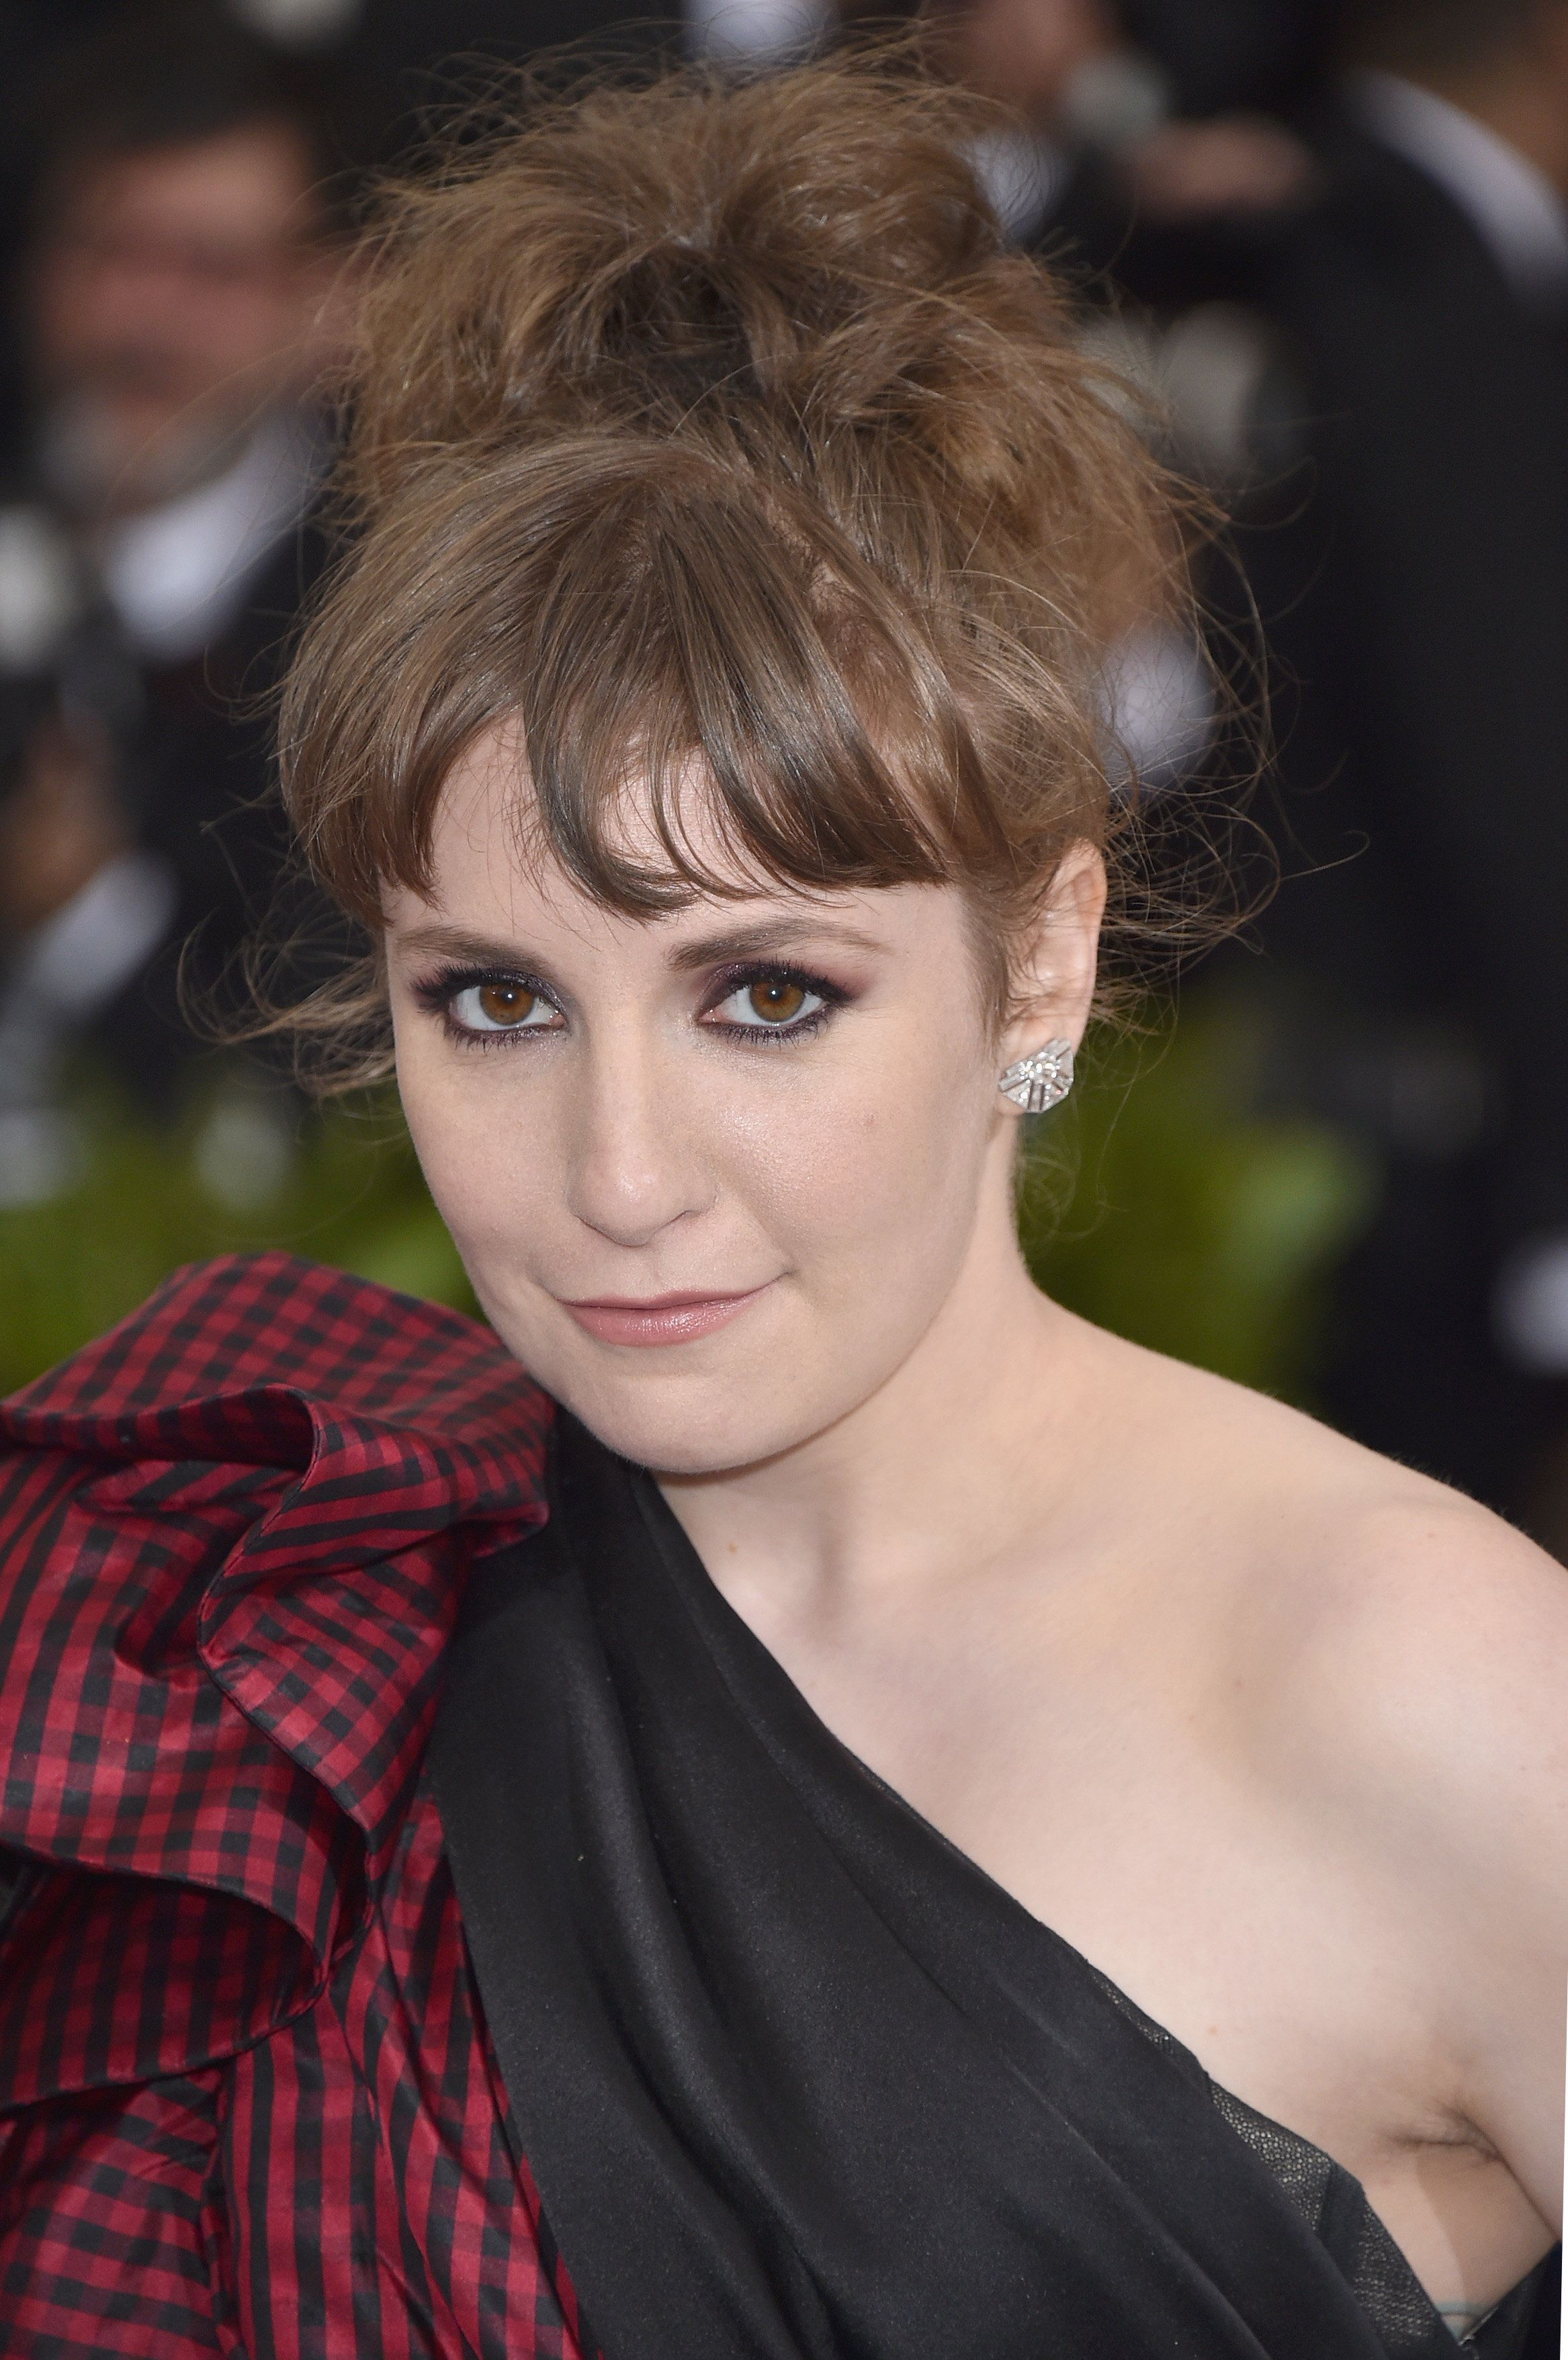 Lena Dunham Opens Up About OCD And Anxiety: 'There's No Shame In Asking For